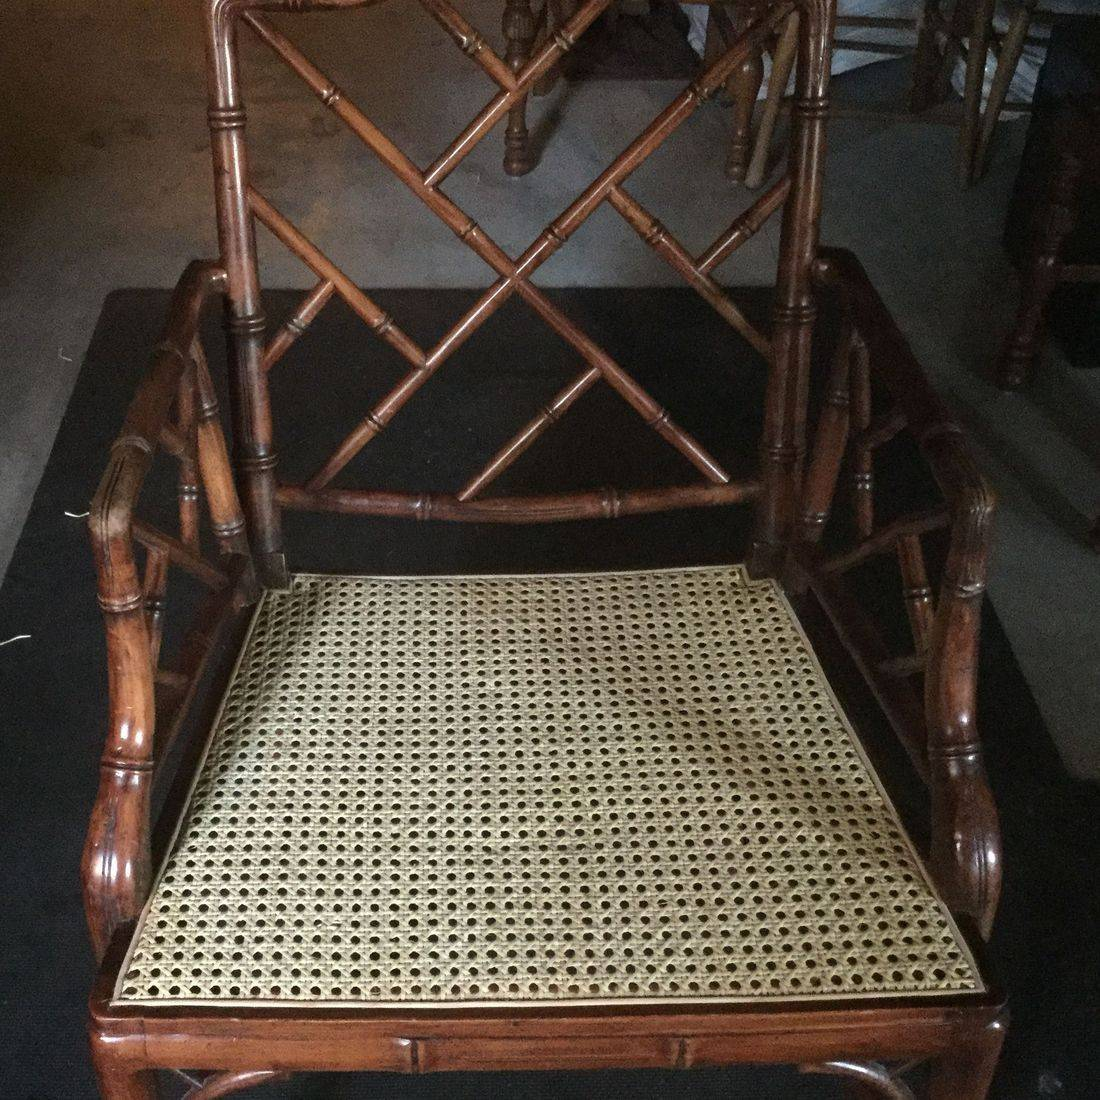 Pressed Cane or Cane Webbing done by Hank's Cane & Rush Restoration